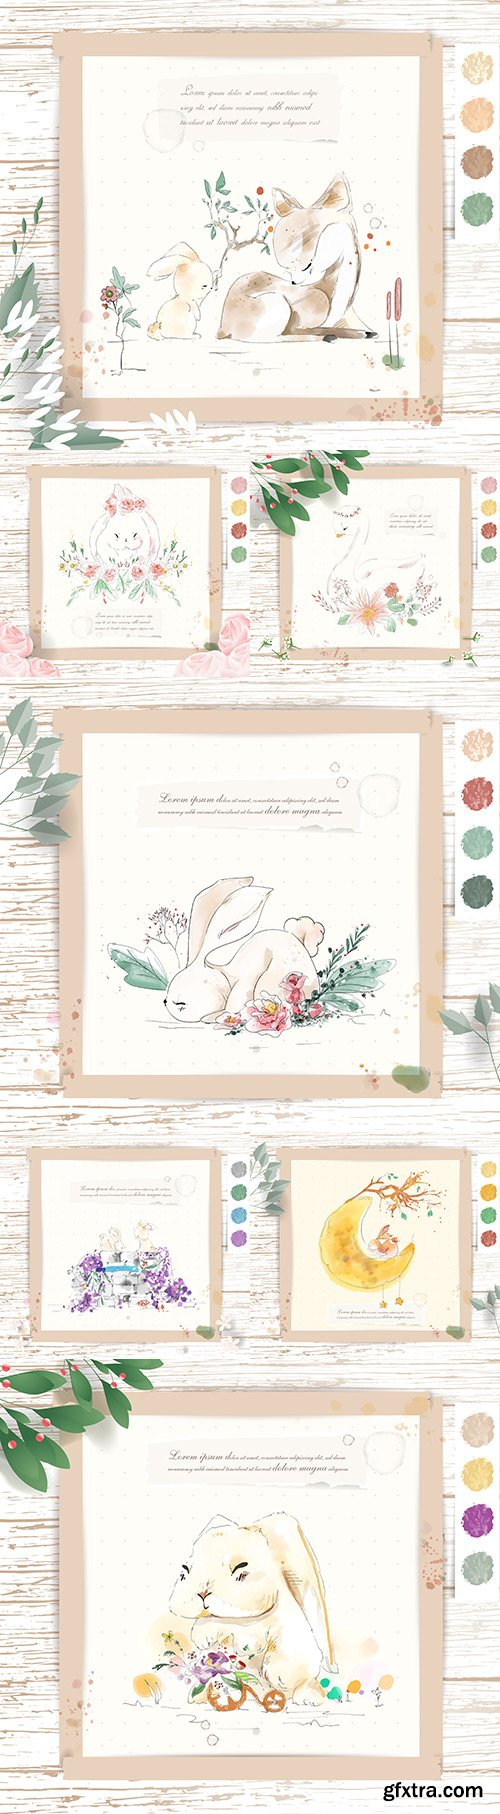 Watercolor cute animals with tropical flowers and leaves